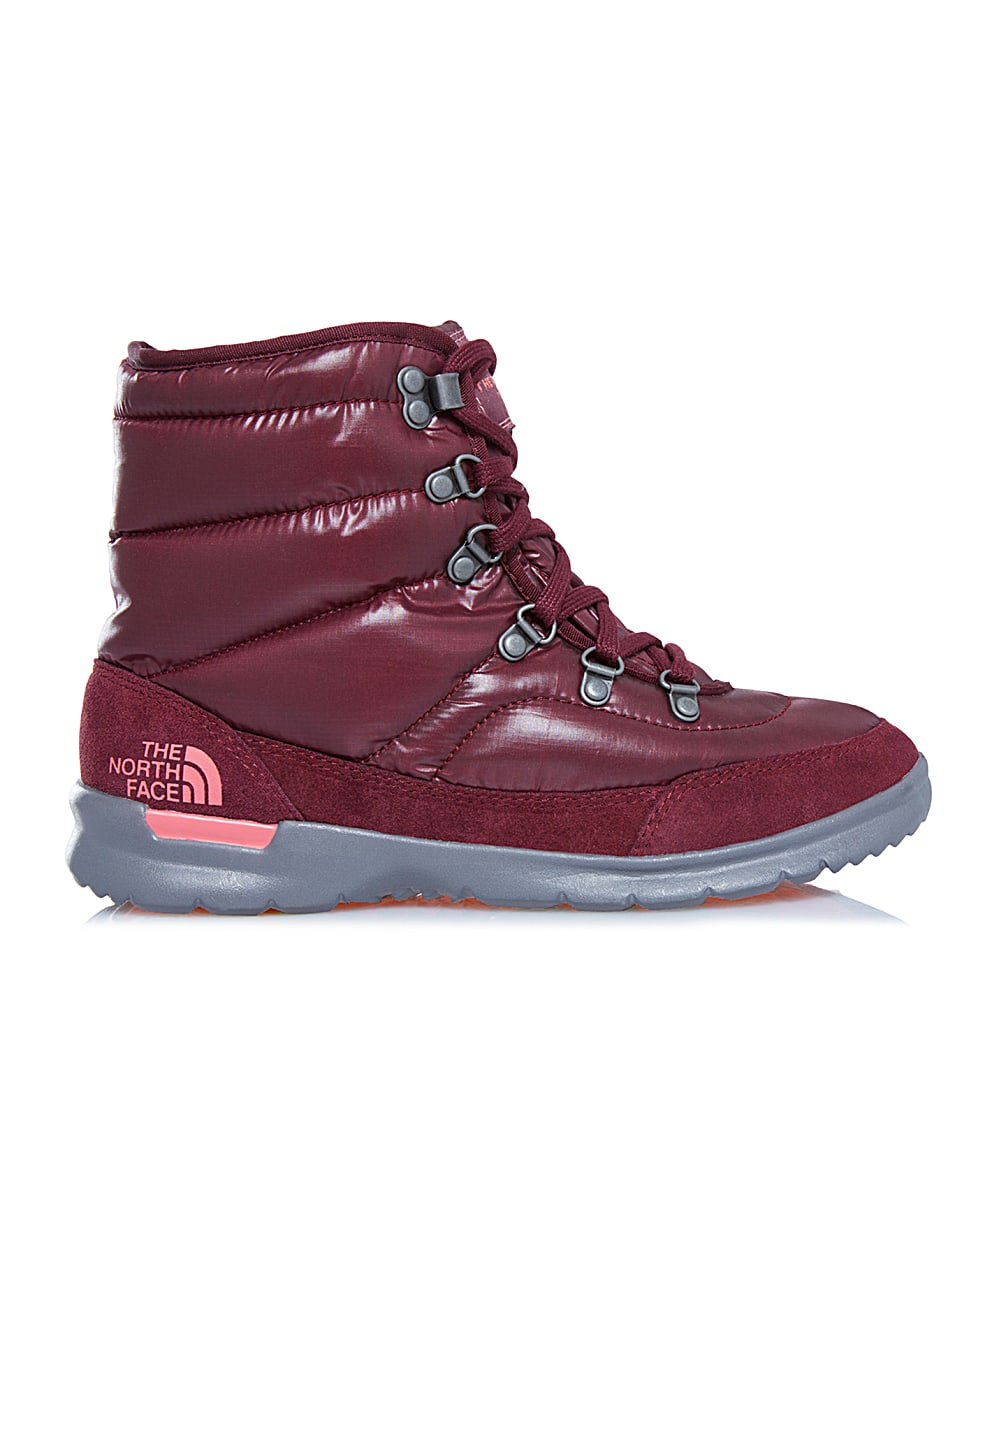 The North Face Thermoball Lace II - Stiefel für Damen - Lila - 39